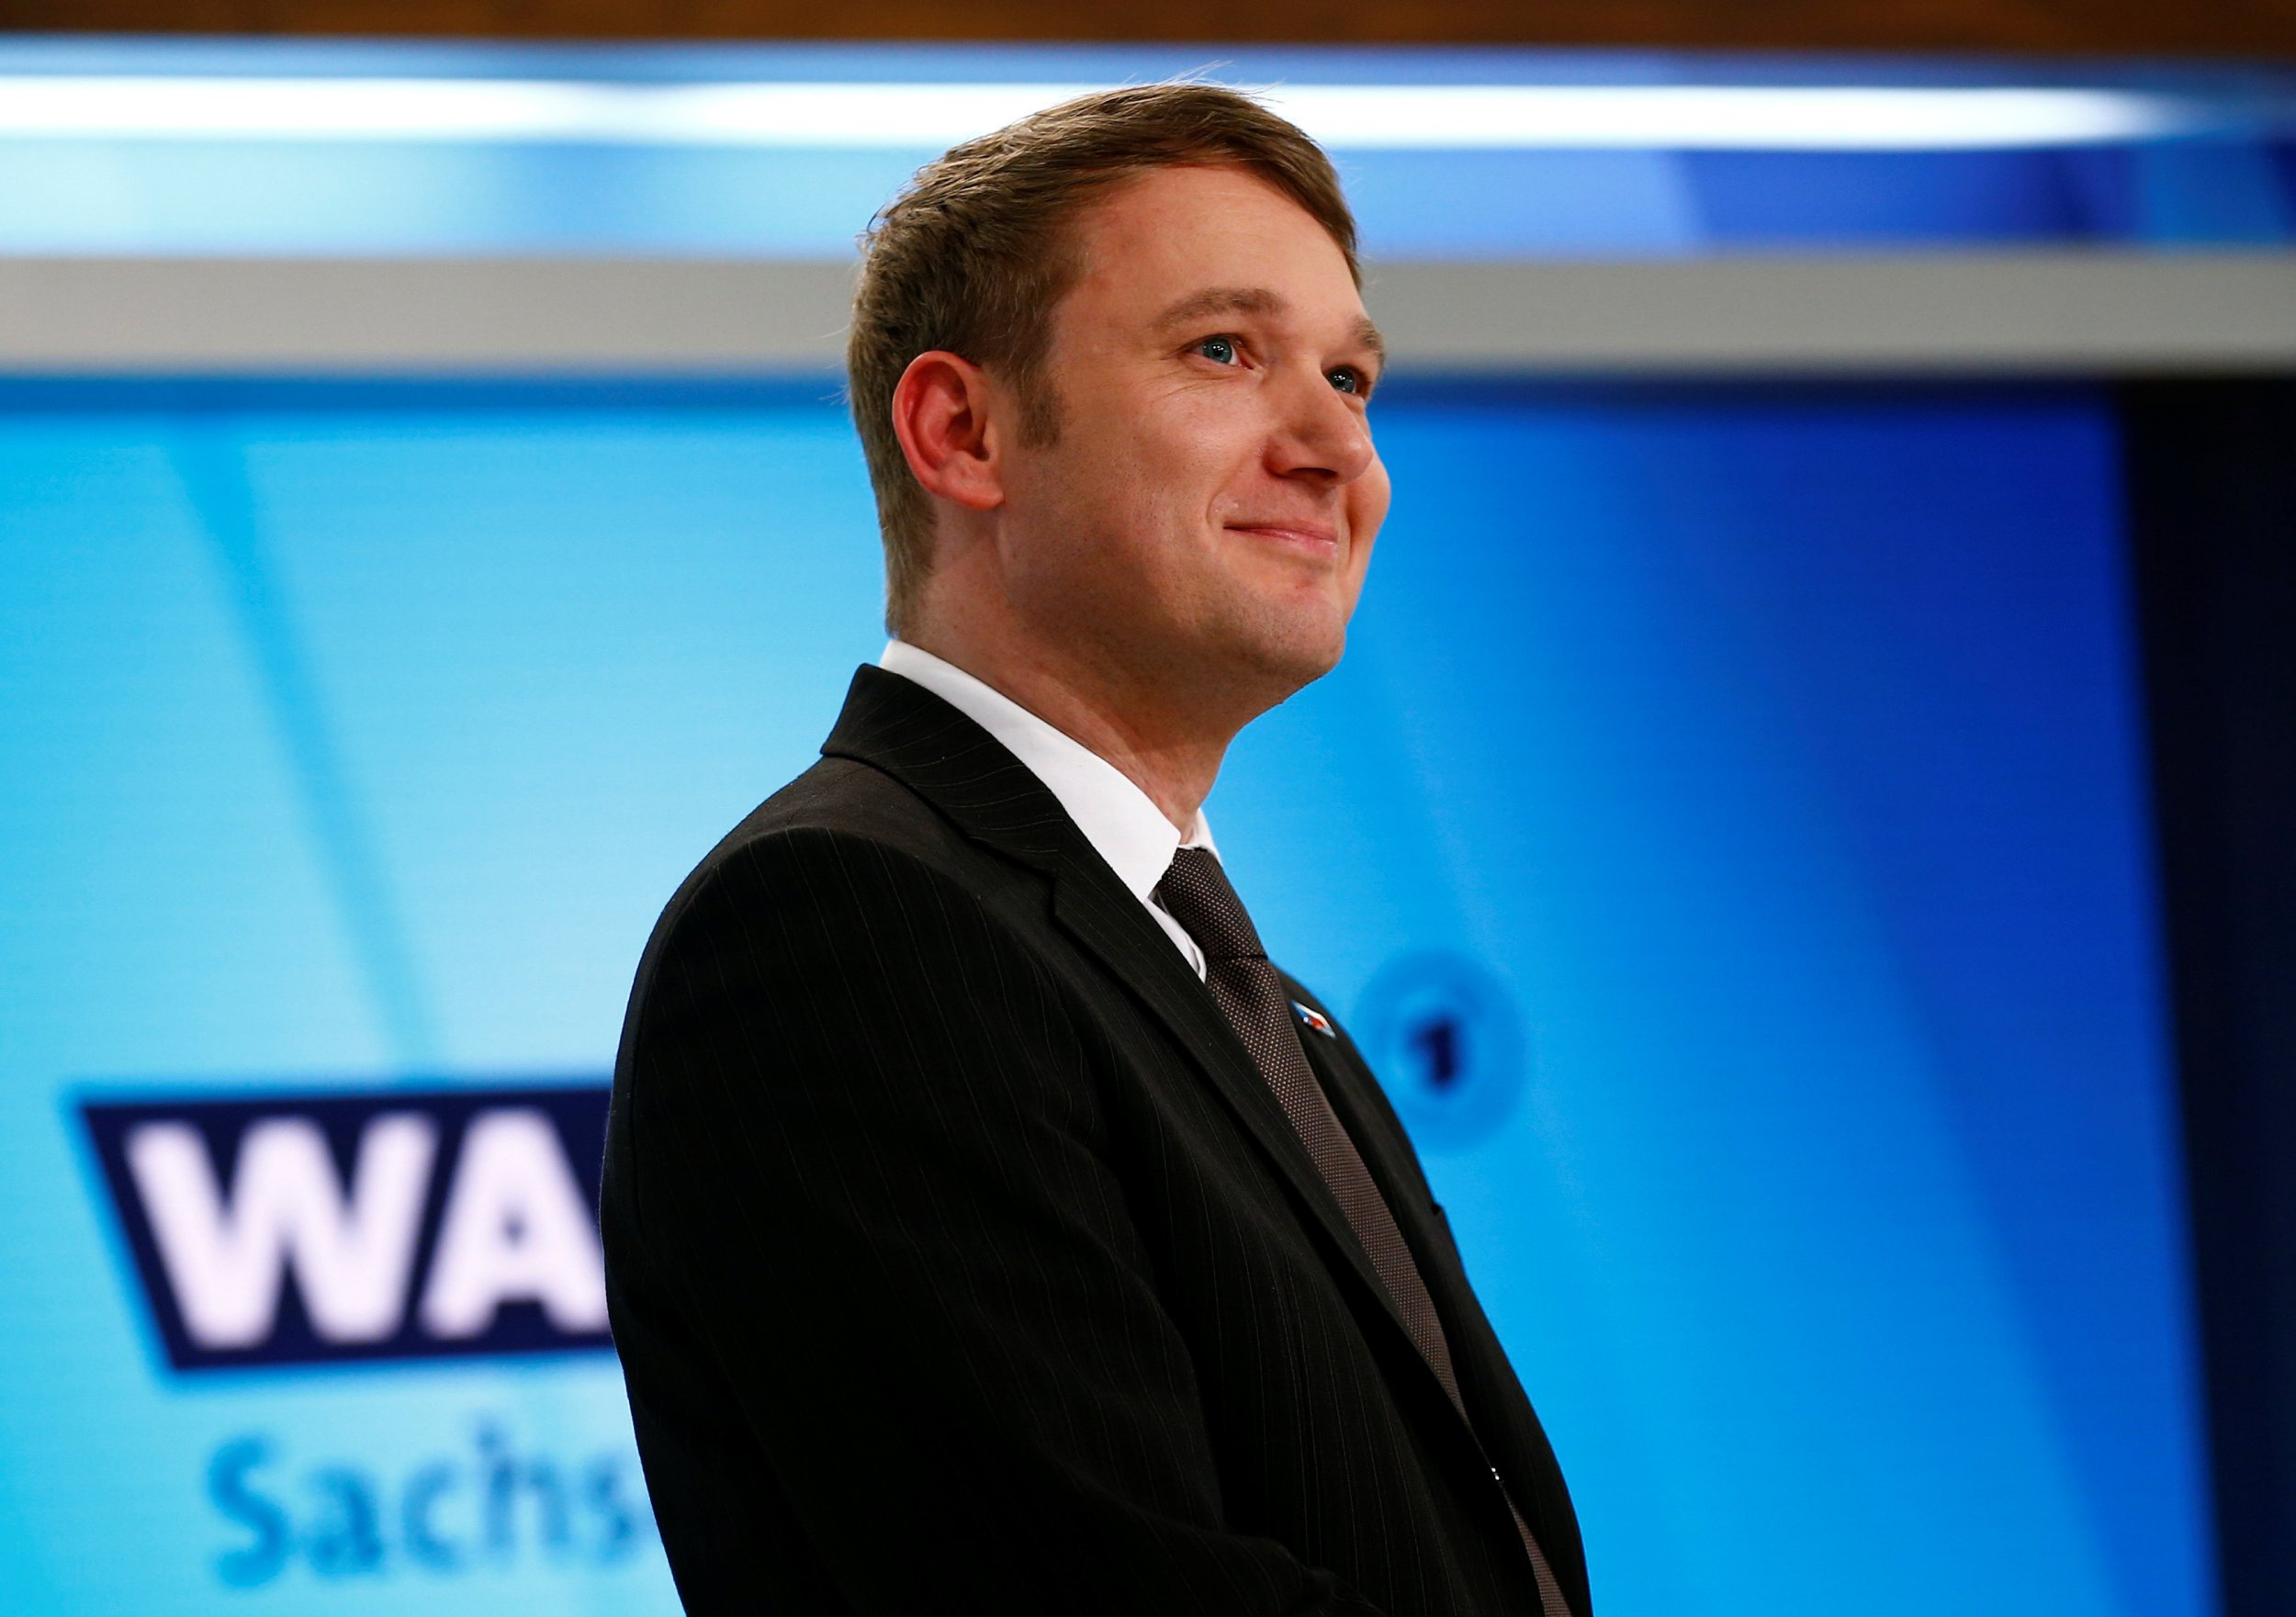 FILE PHOTO: Andre Poggenburg of the anti-immigration Alternative for Germany (AfD) party smiles during TV interview after the first local elections polls in Magdeburg, Germany March 13, 2016. REUTERS/Wolfgang Rattay/File Photo